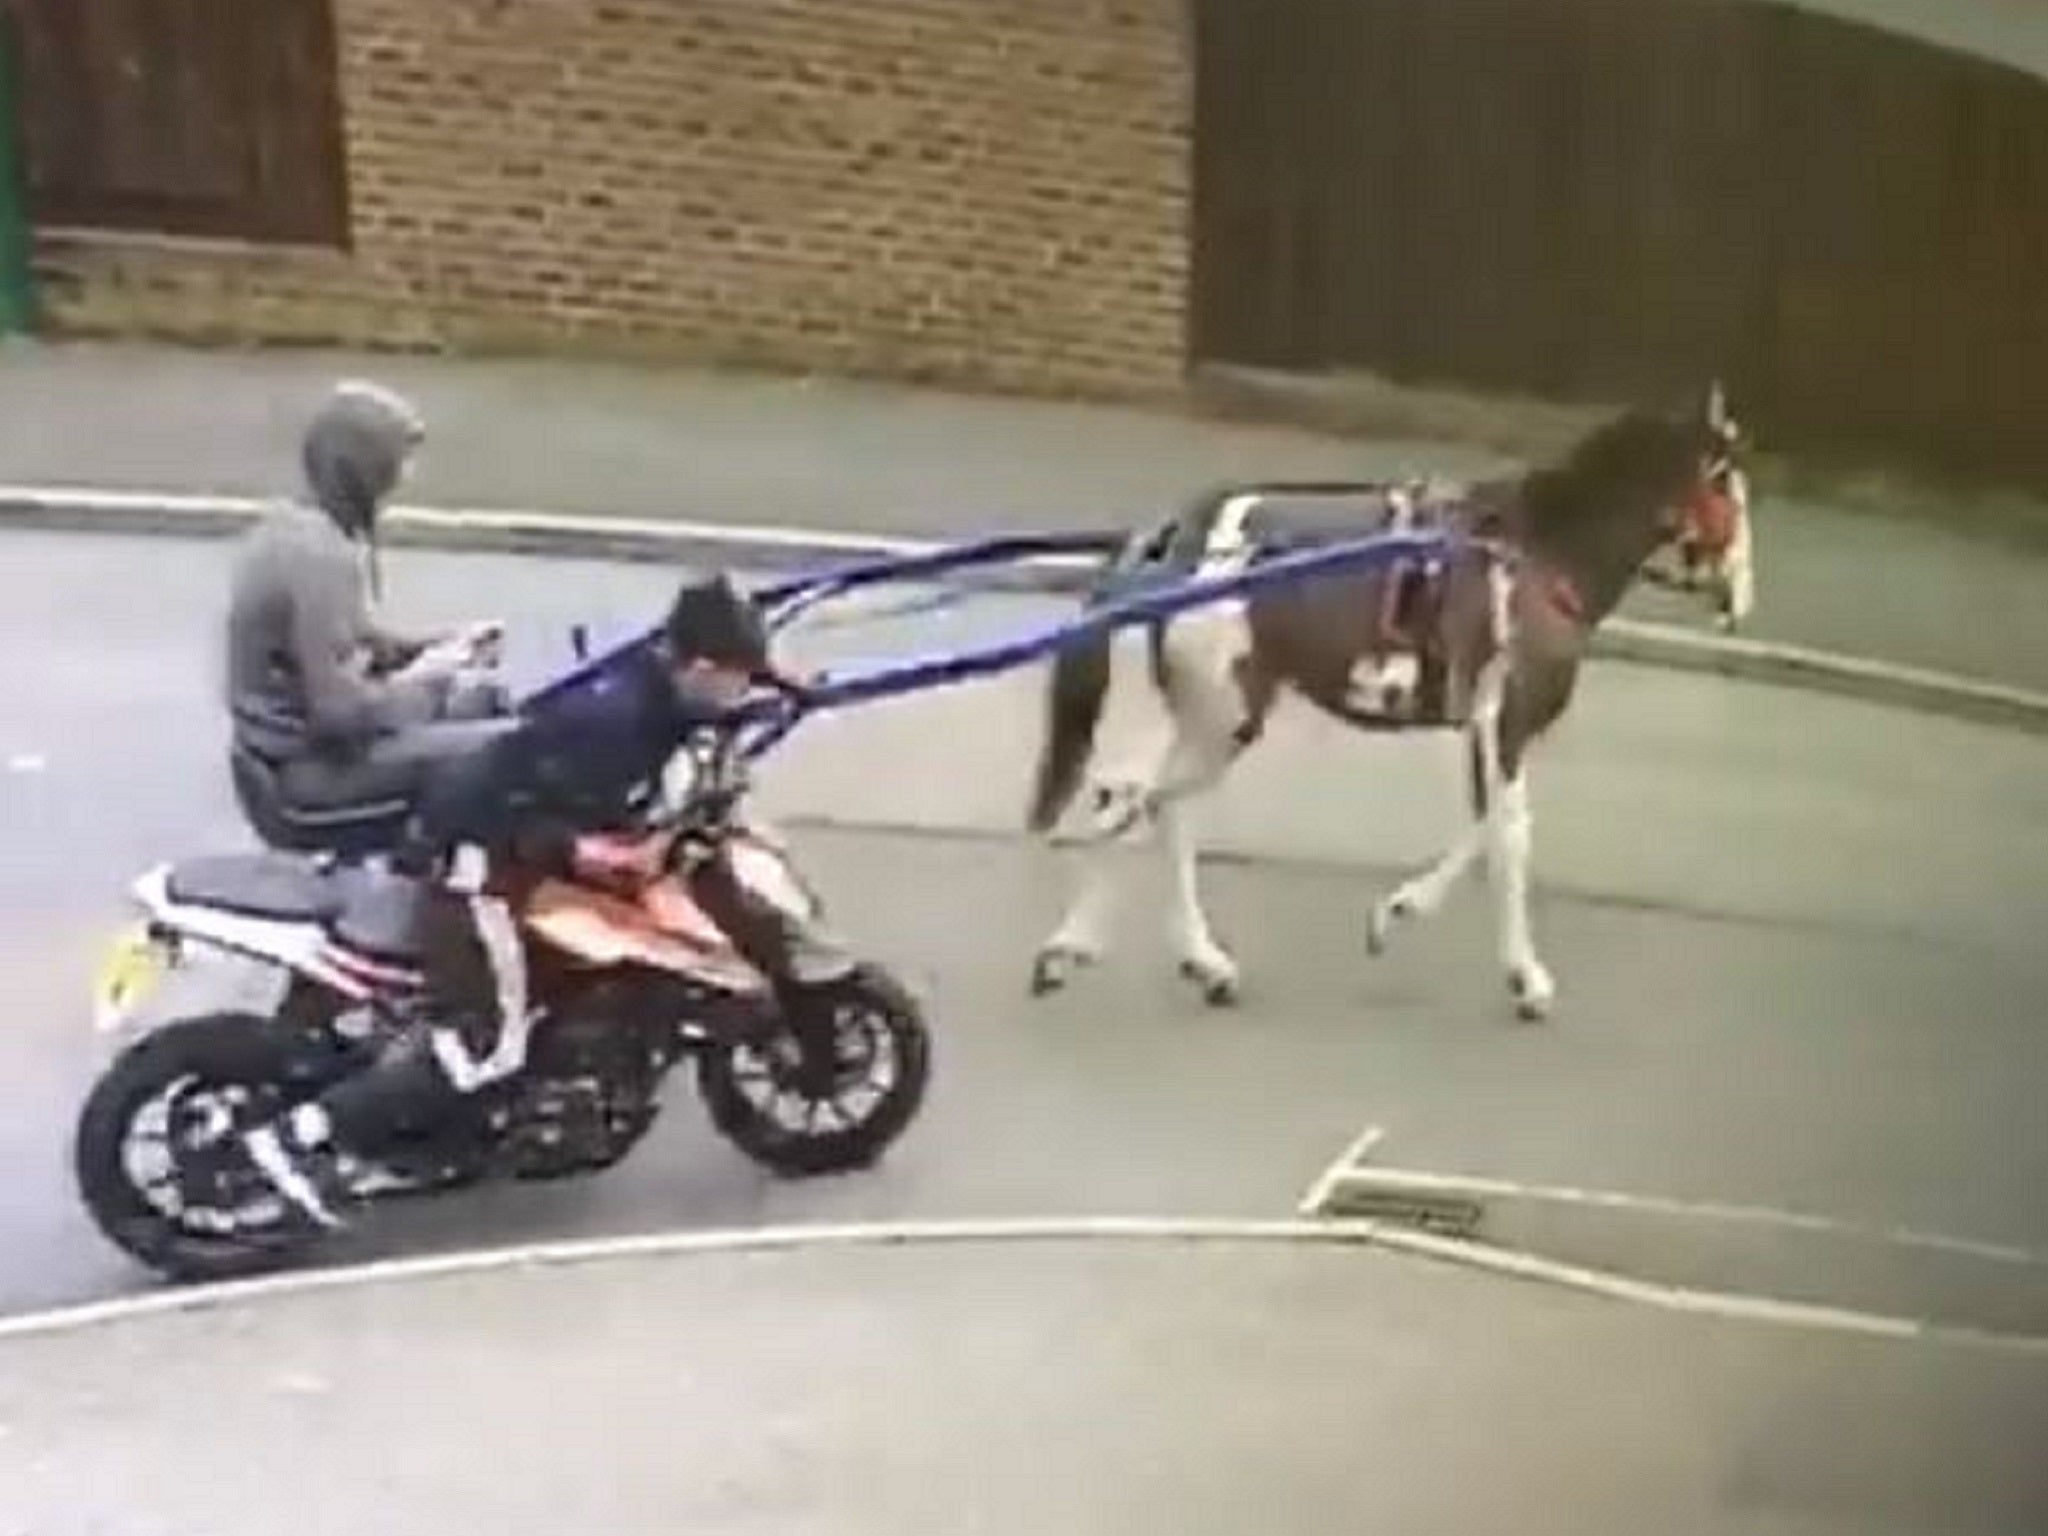 Stolen motorbike 'towed away by horse and two people'